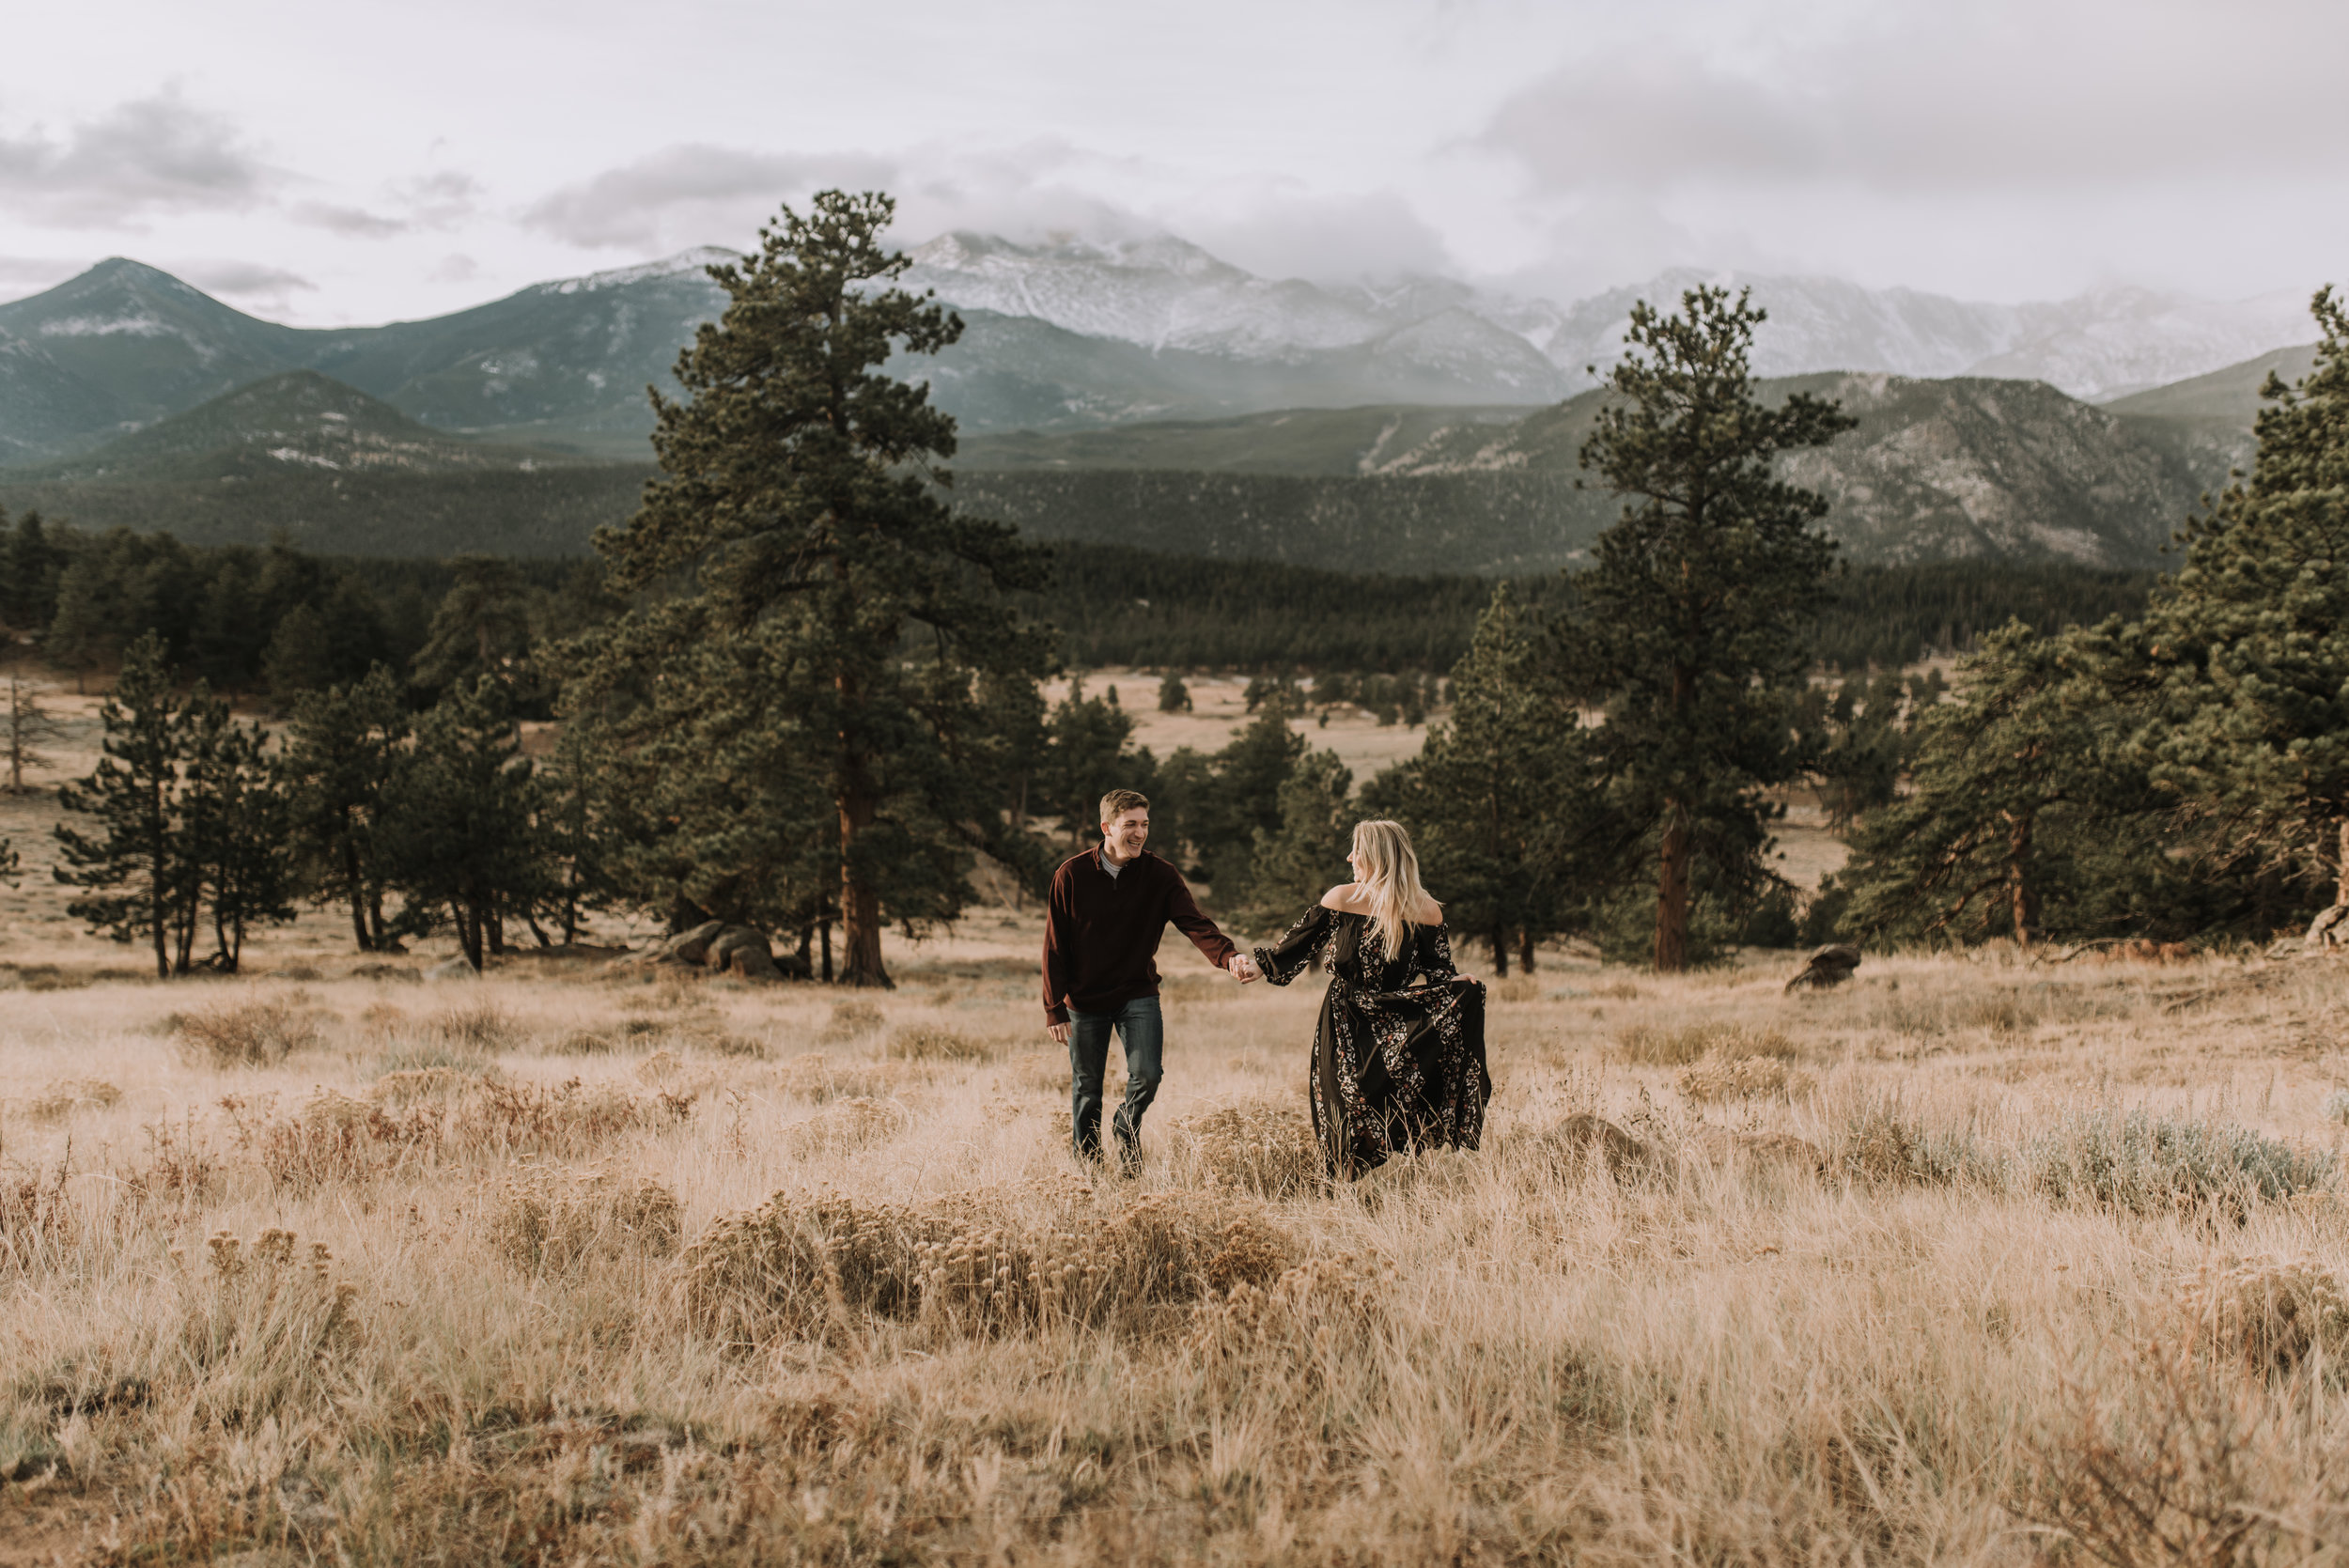 Traveling destination wedding photographer for adventure elopements and weddings.